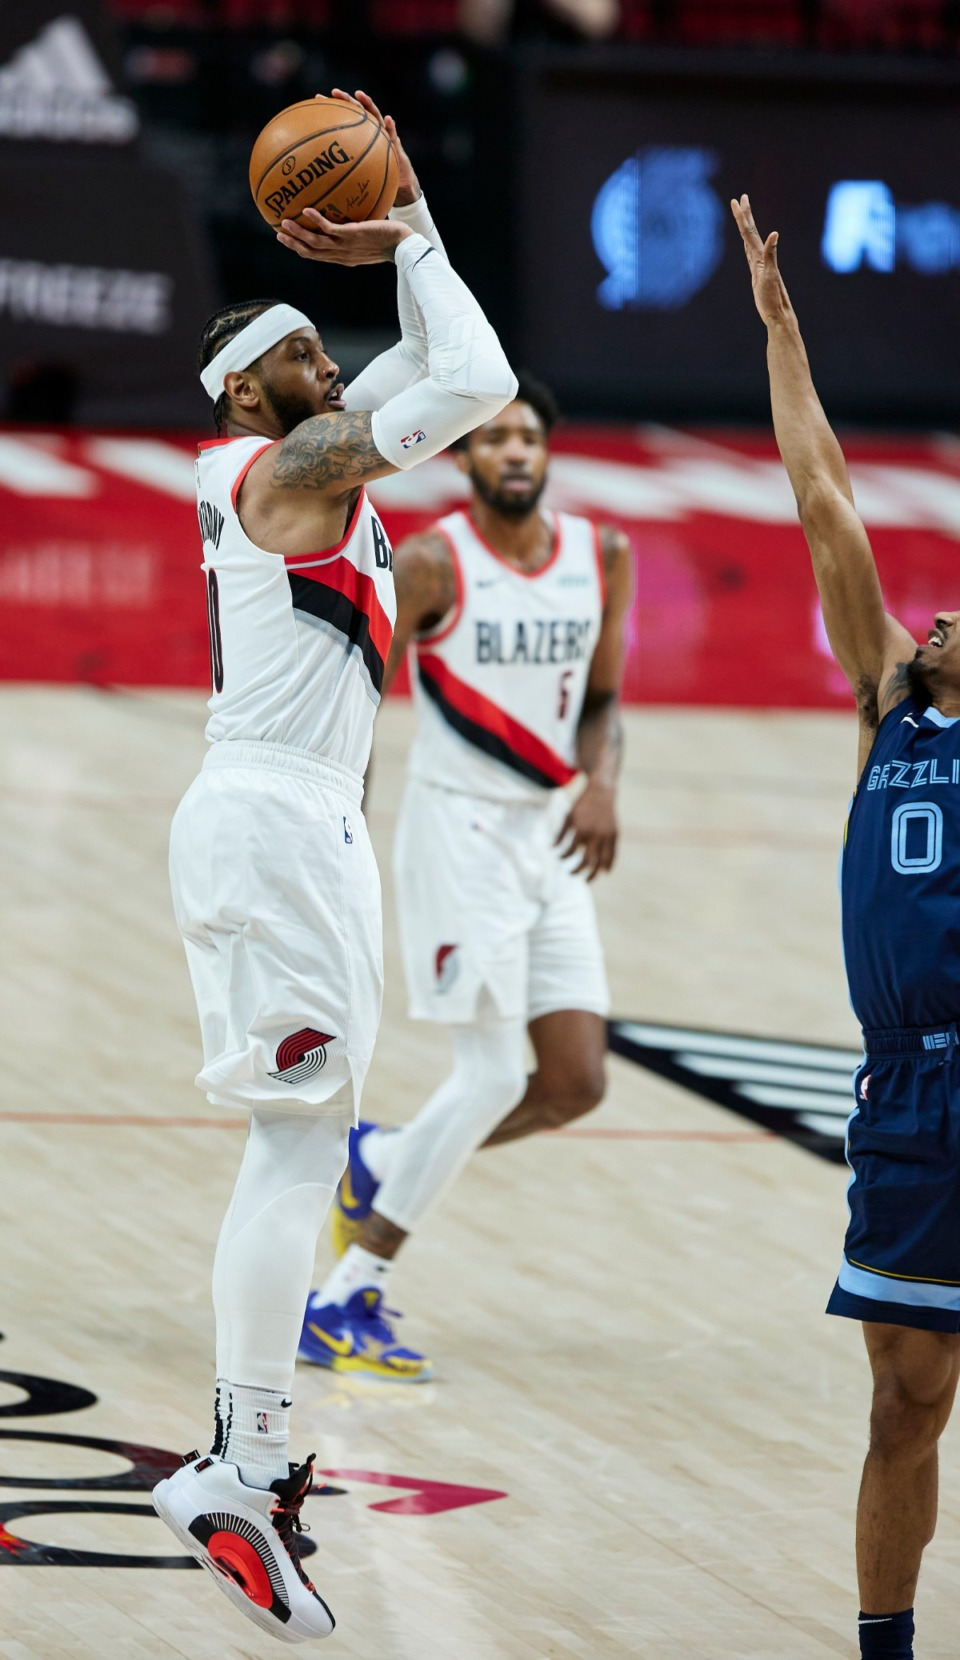 <strong>Portland Trail Blazers forward Carmelo Anthony, left, shoots a three-point basket over Memphis Grizzlies guard De'Anthony Melton during the first half of an NBA basketball game in Portland, Ore., Sunday, April 25, 2021.</strong> (Craig Mitchelldyer/AP)